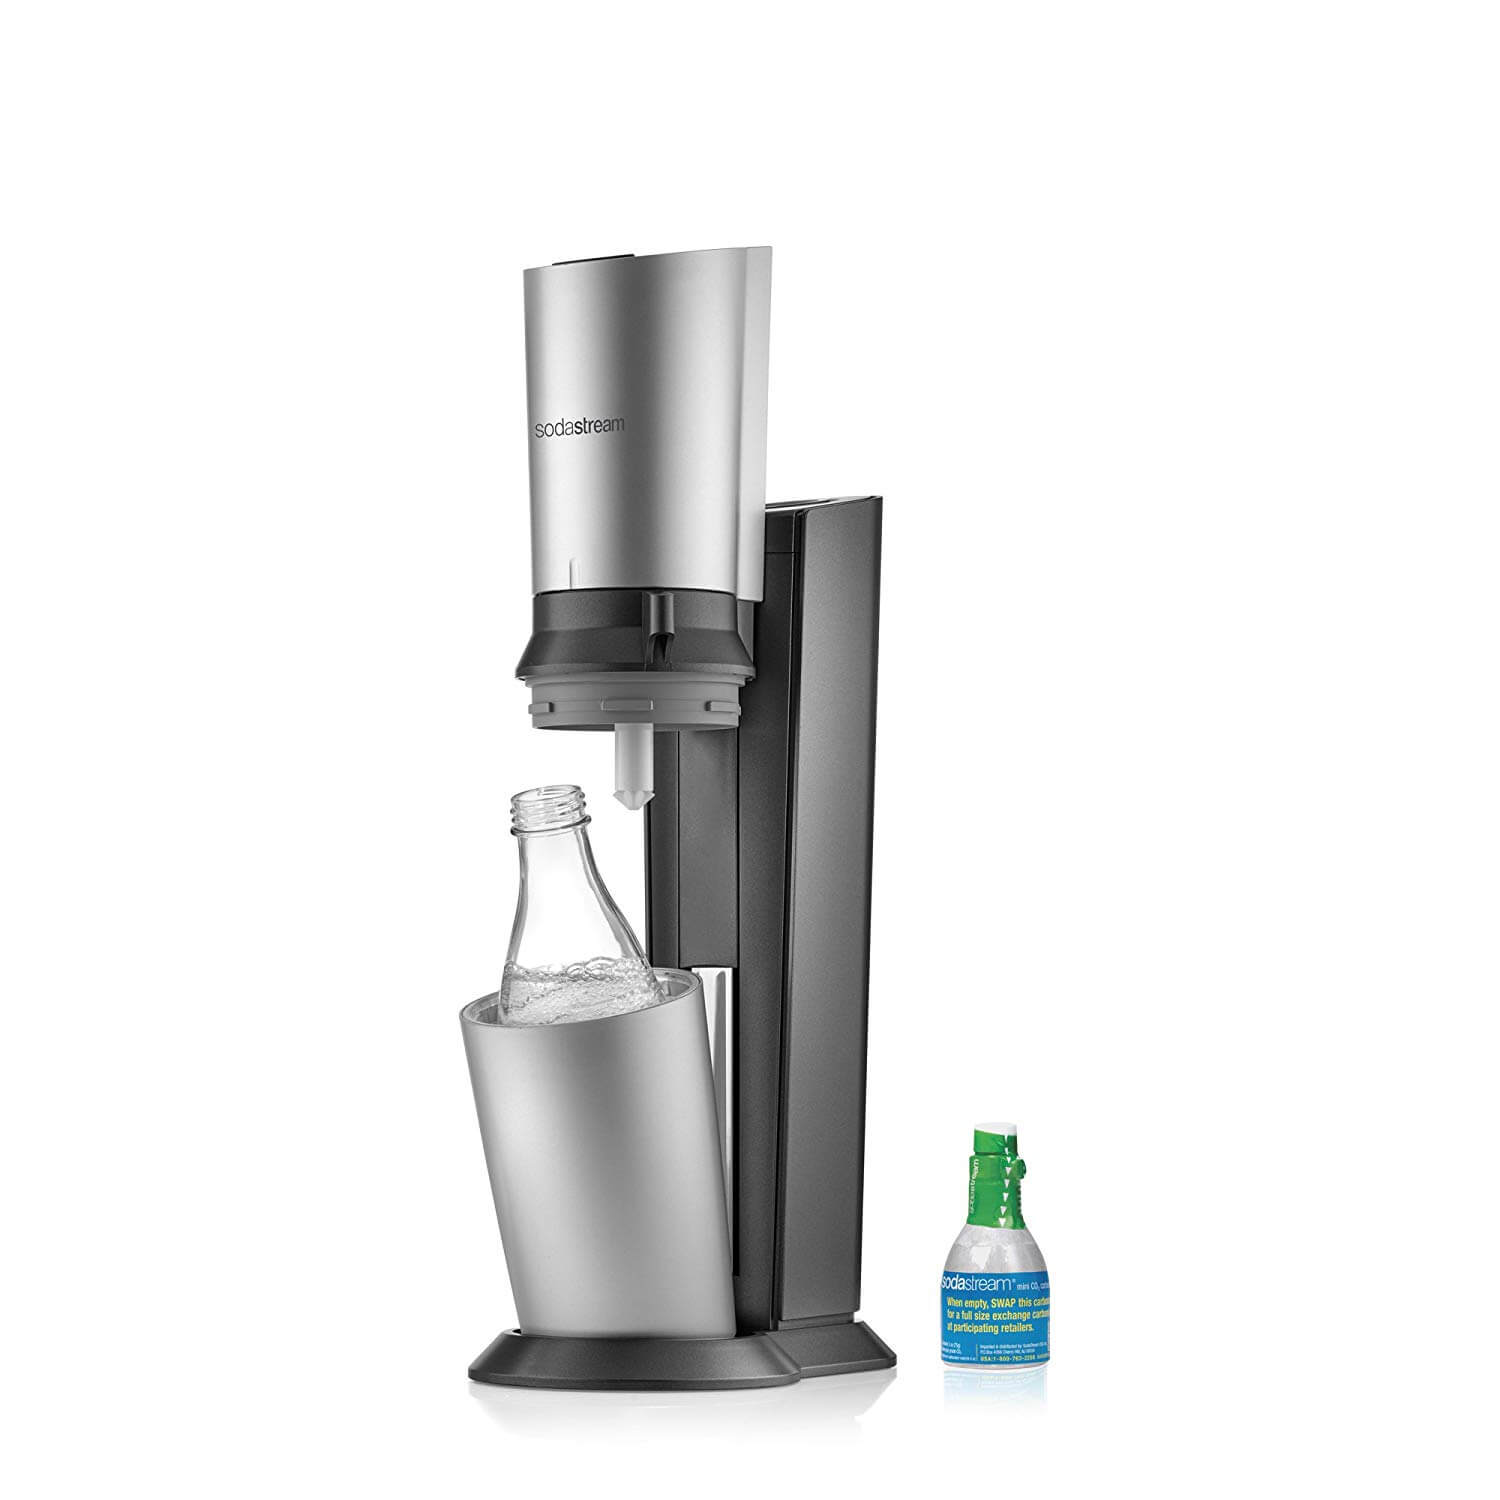 SodaStream Crystal Sparkling Water Maker Starter Kit